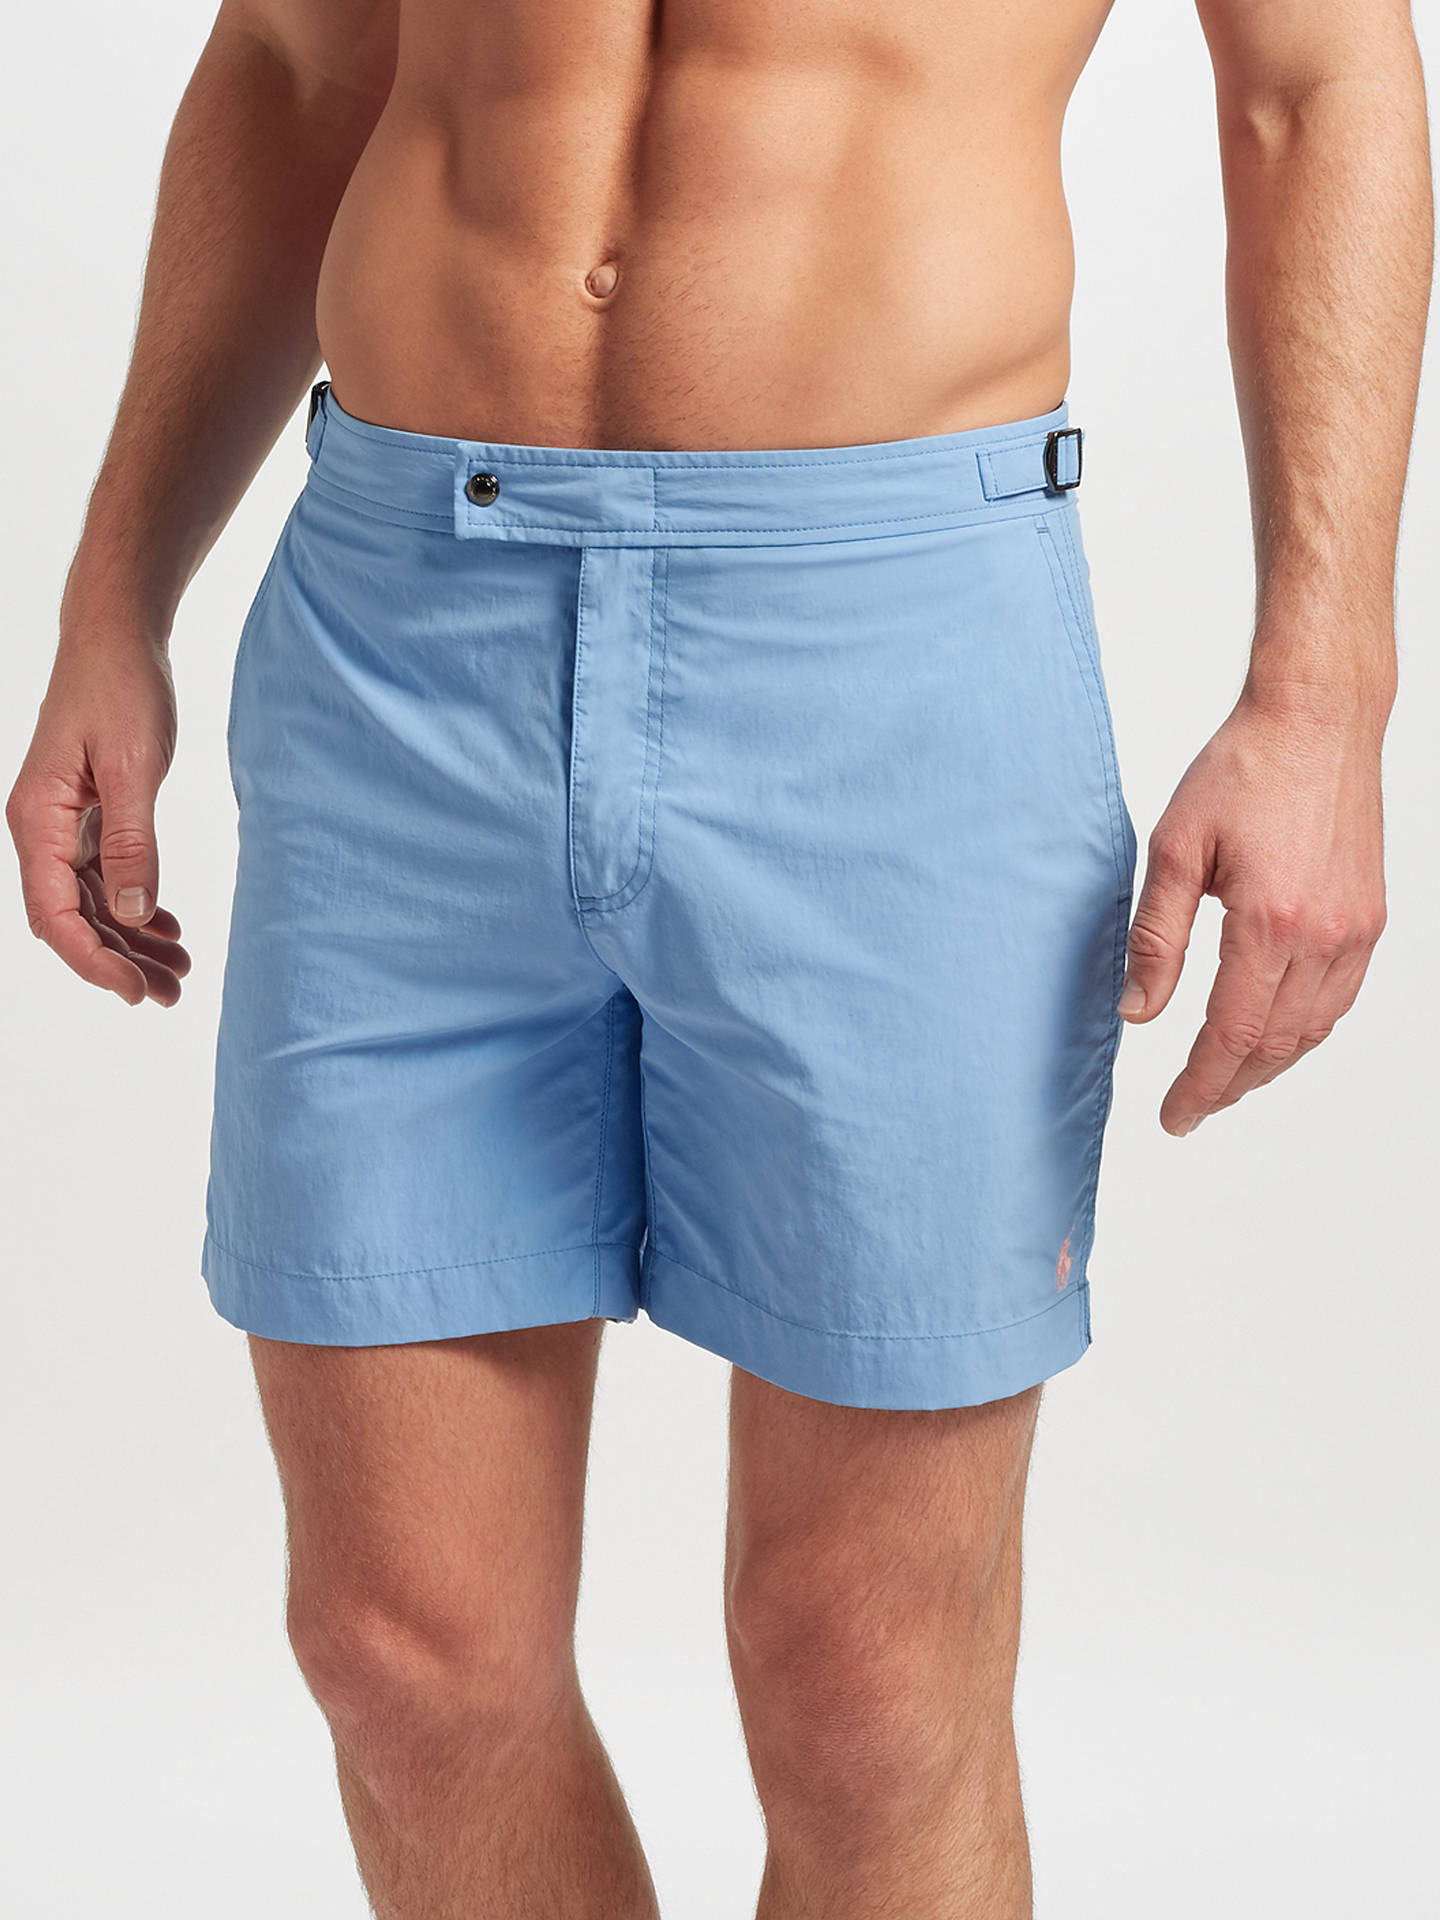 8c15835bd0 Buy Polo Ralph Lauren Monaco Swim Shorts, Chatham Blue, 30 Online at  johnlewis.